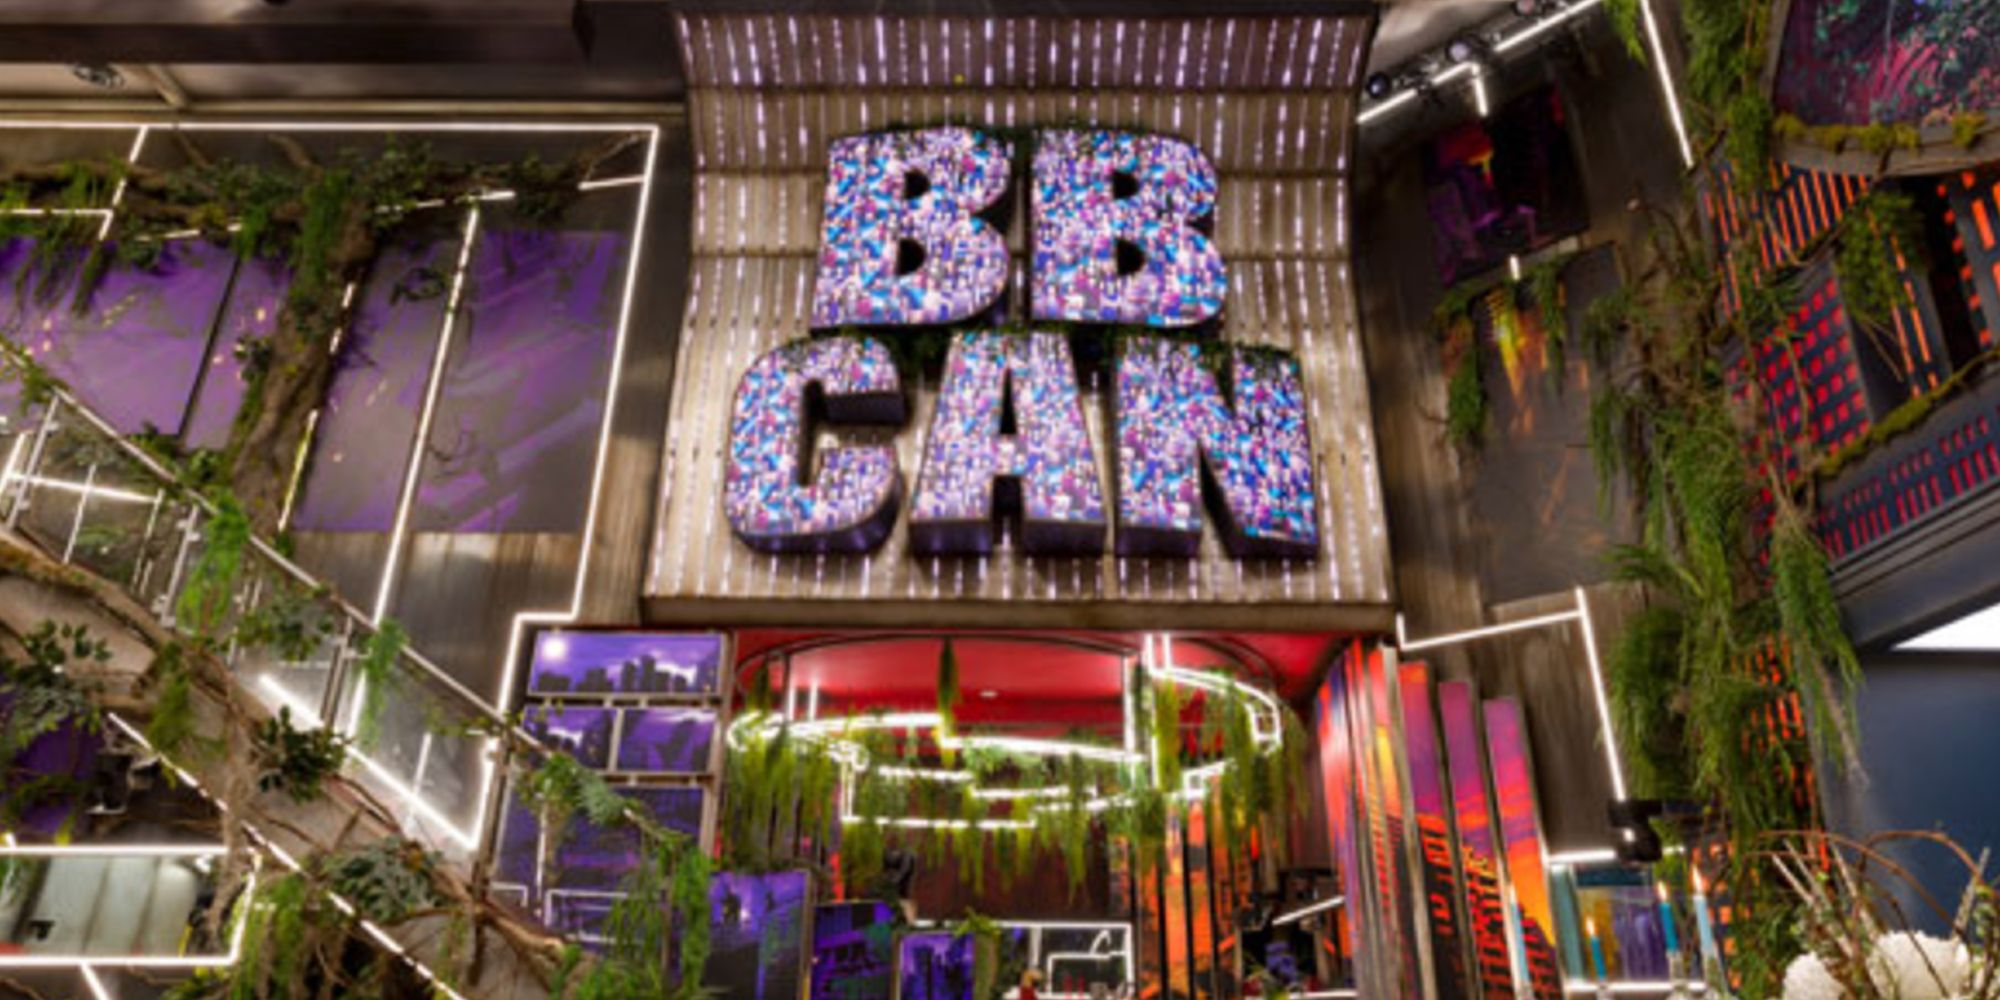 Big Brother Canada Season 9 Episode 6 to be released soon